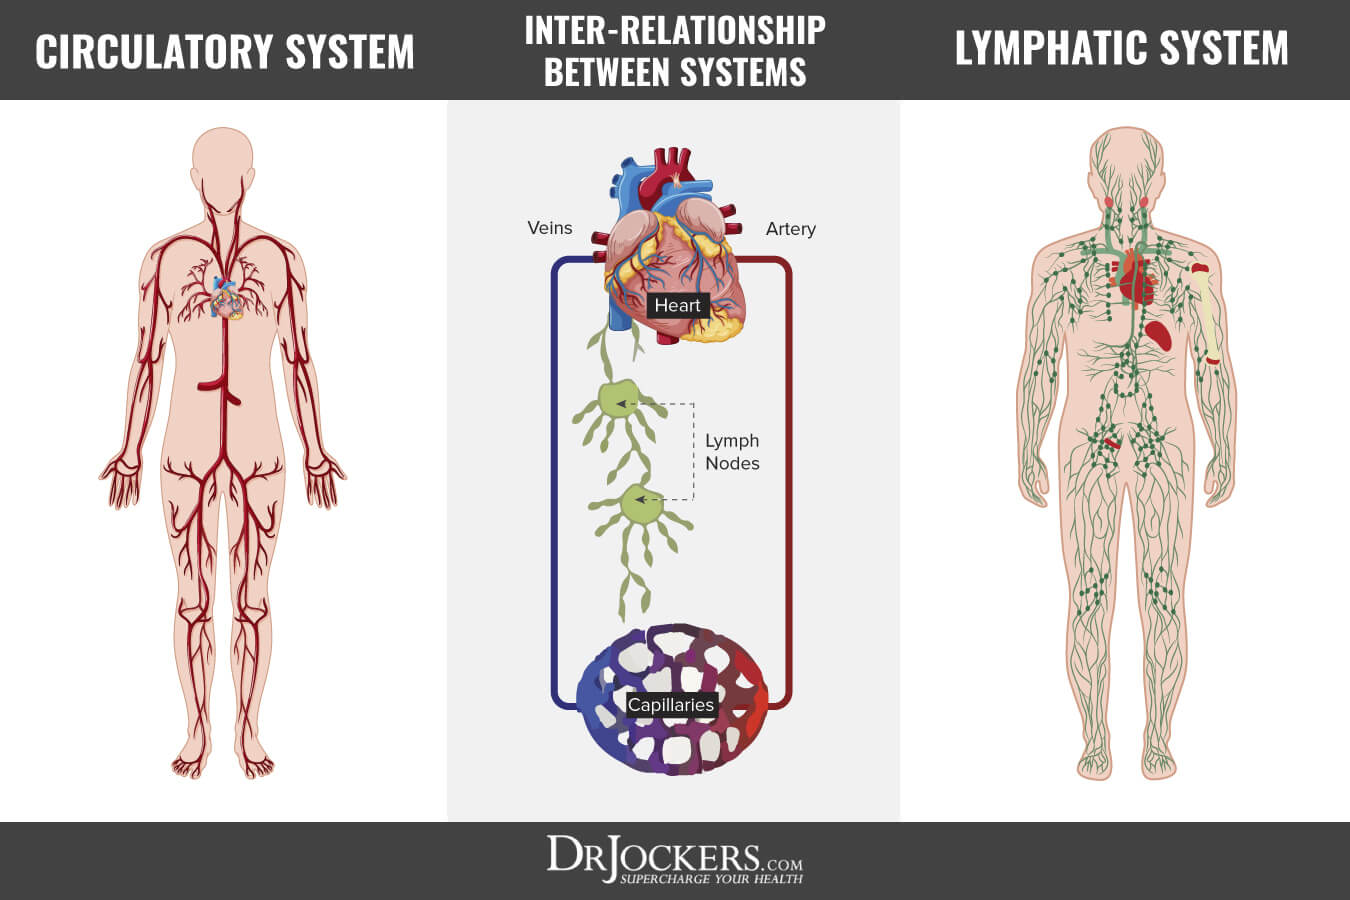 diagram nodes lymphatic system emg pickup wiring les paul 10 ways to improve your drjockers com a poorly functioning is associated with the development of chronic disease this article goes into detail on how lymphatics